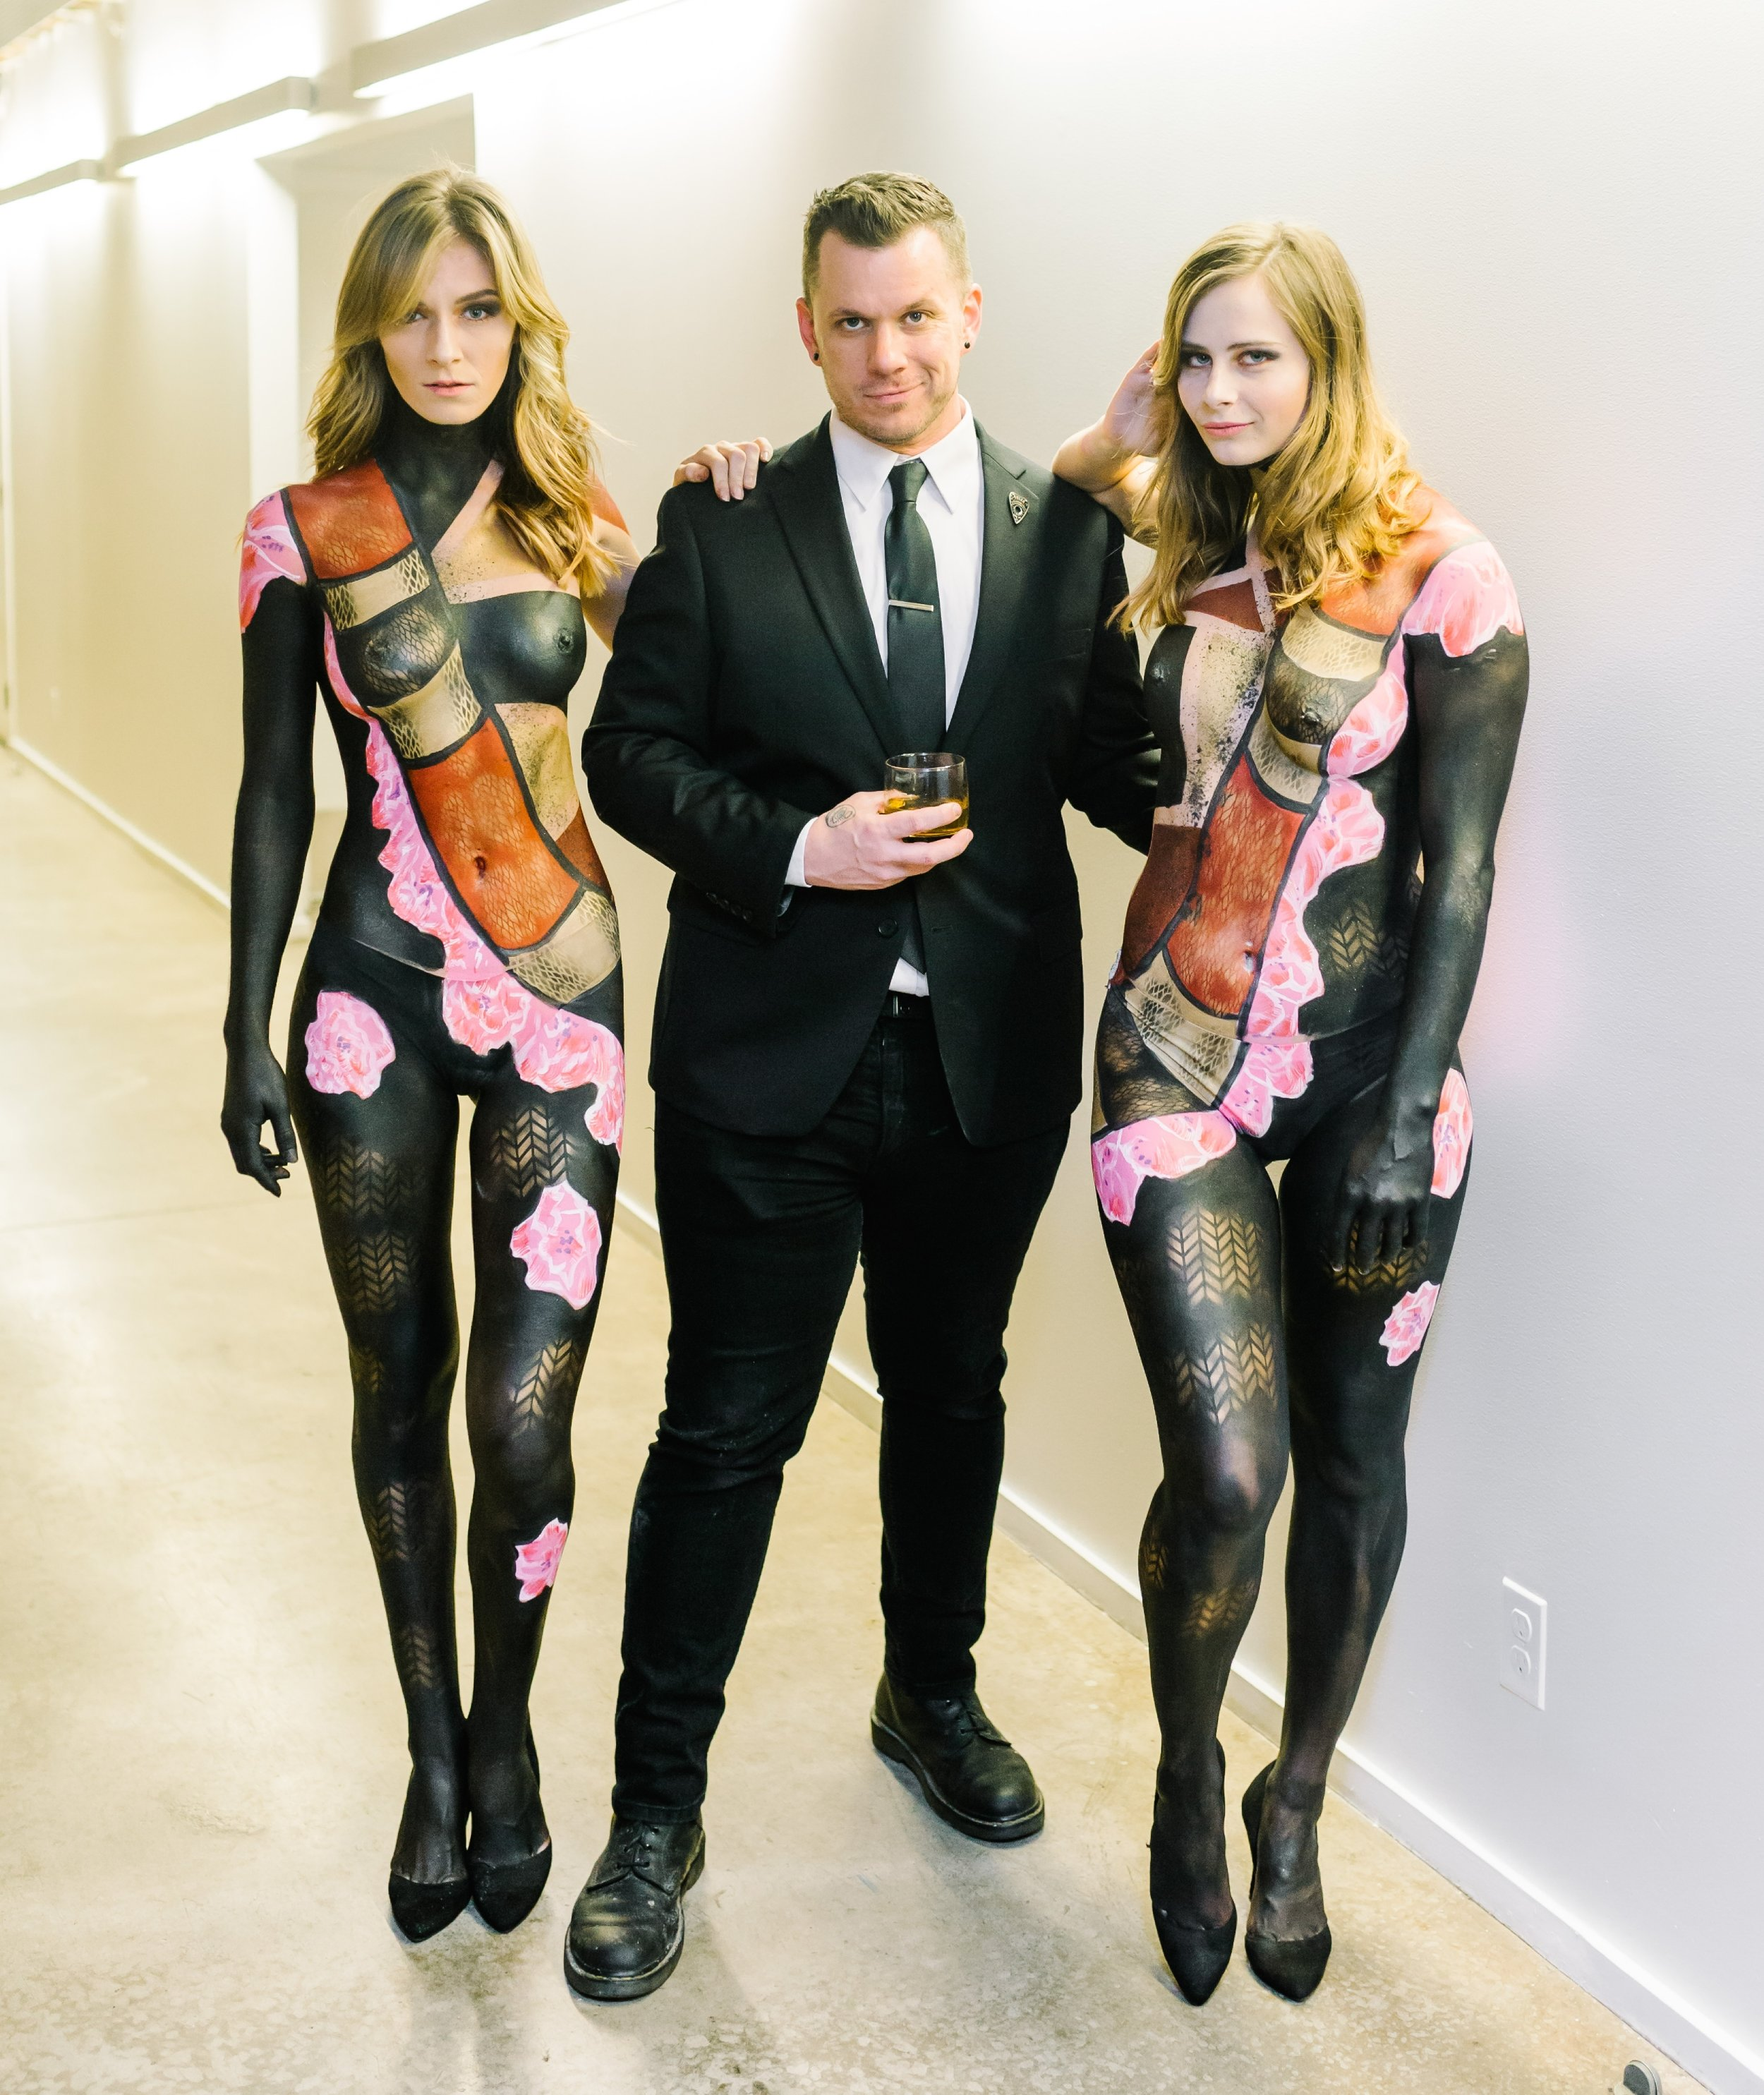 Me with Mallory and Karoline,Photo by Morgan Worley